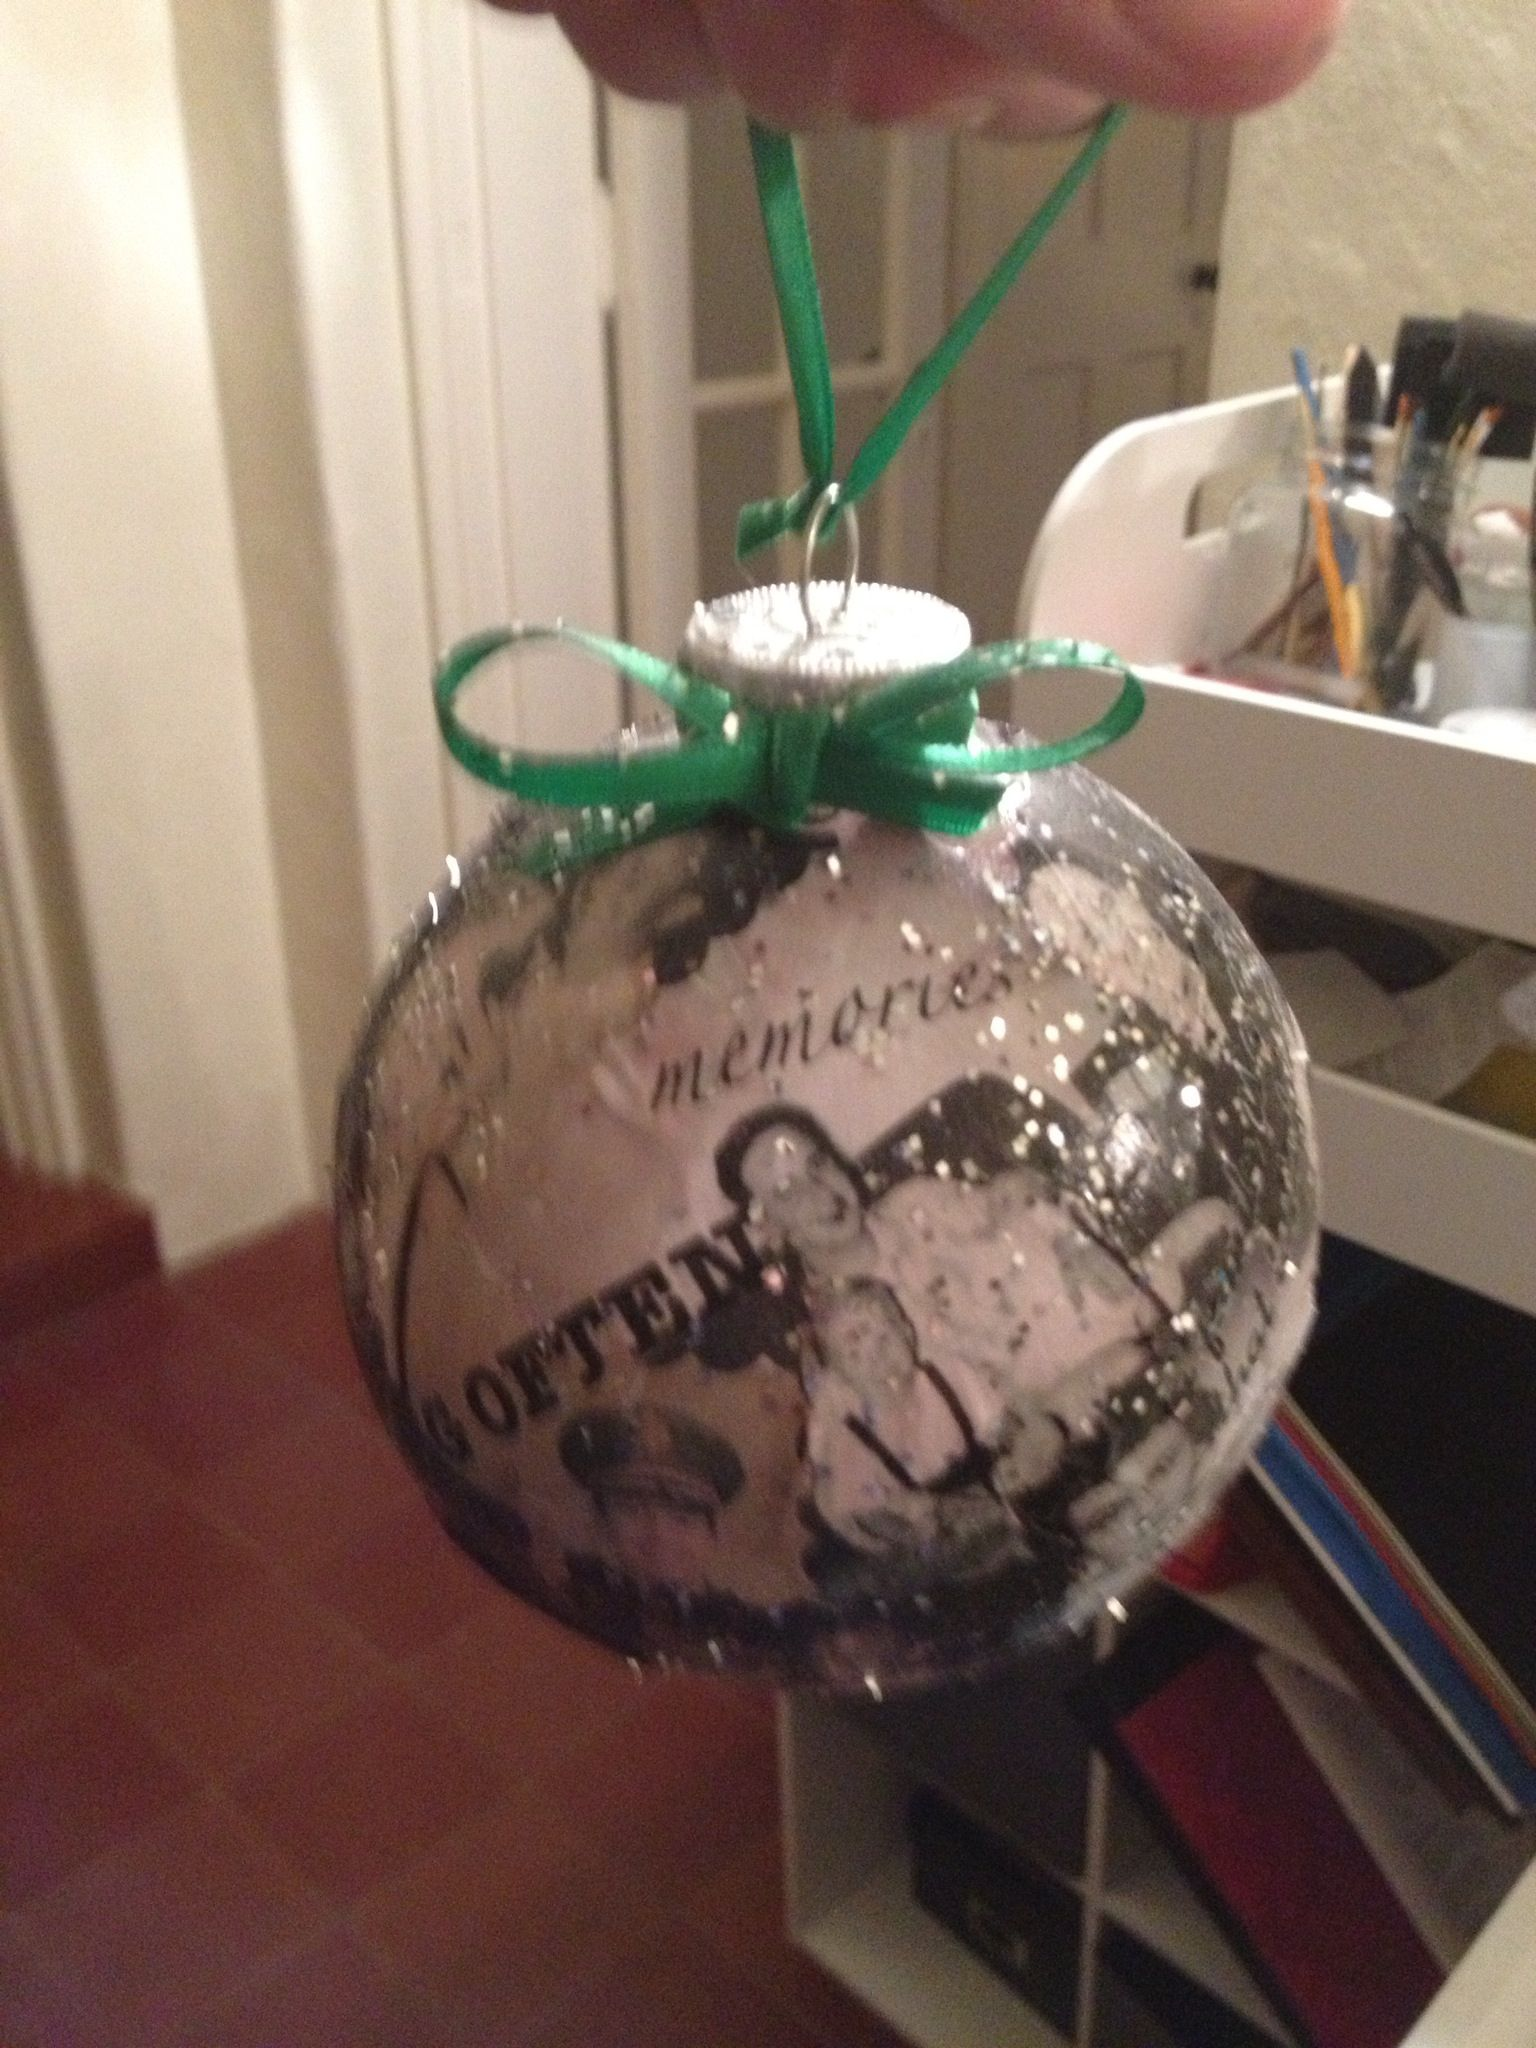 Easy gift idea! Just buy some clear glass or plastic ornaments at your local craft store. Tape some tissue paper to a sheet of printer paper, print your favorite photos, then use a thin layer of mod pudge to adhere to the ornament. Sprinkle with glitter and add a bow!